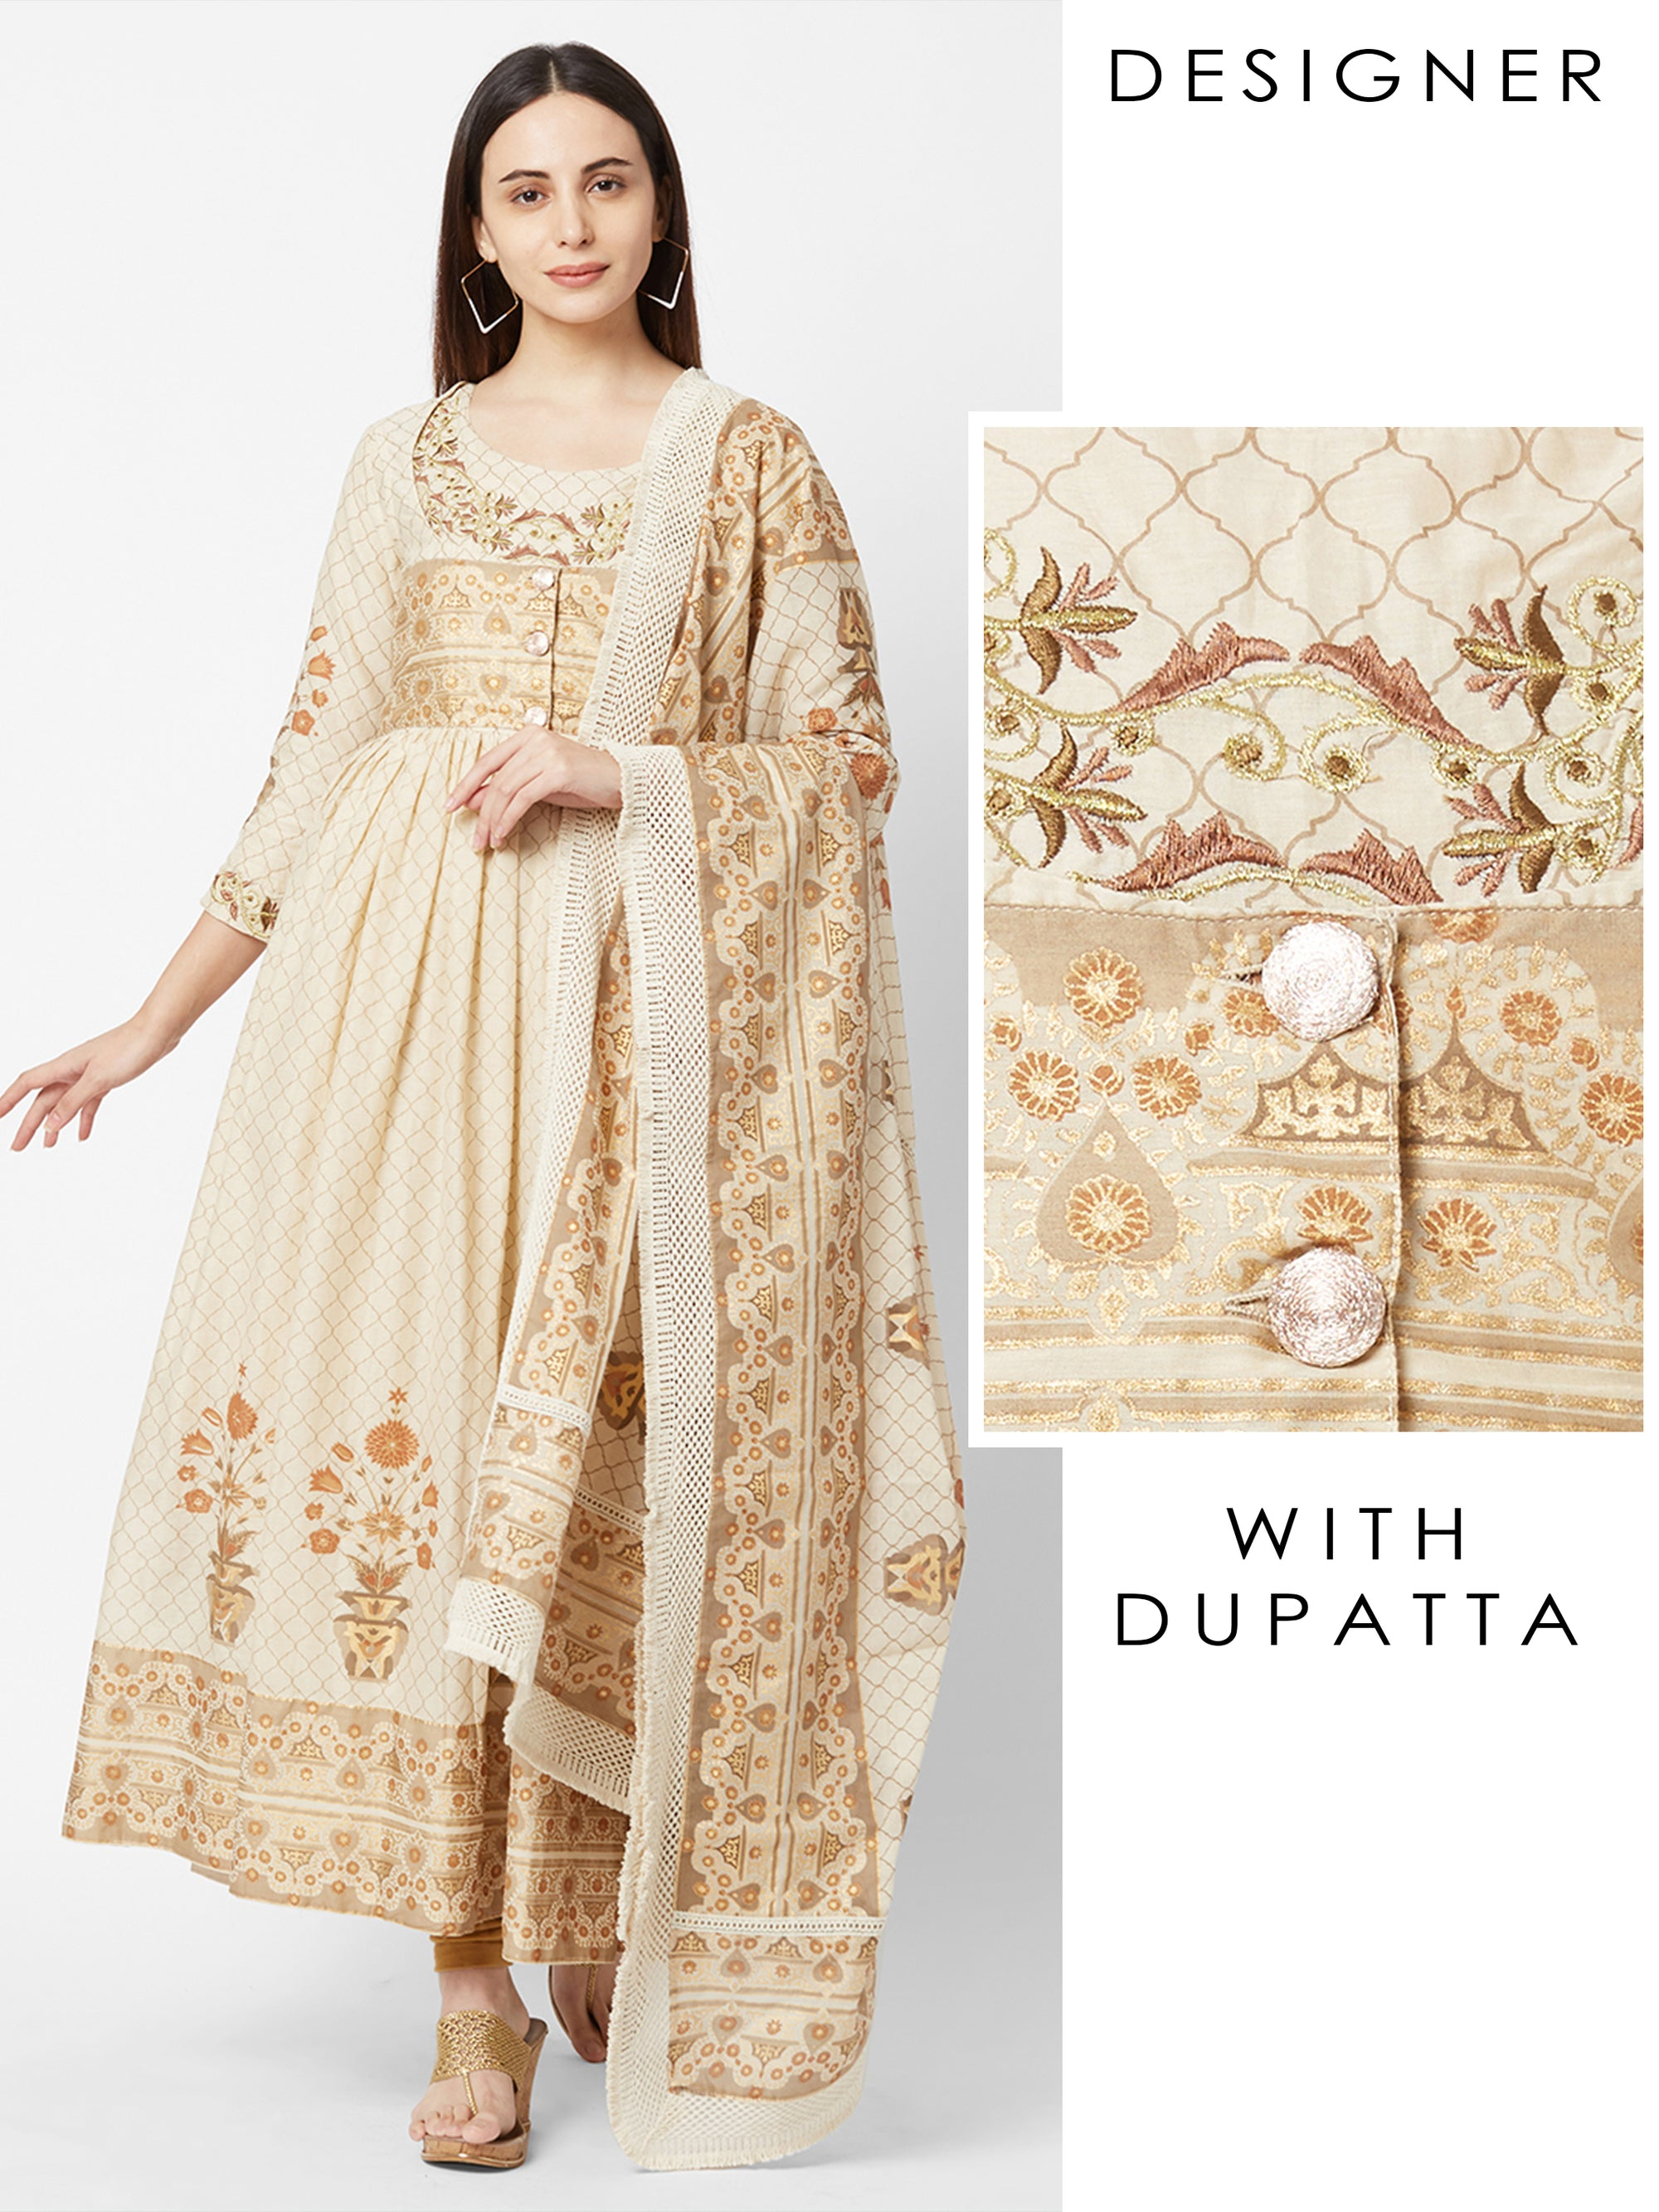 Quatrefoil Printed Floral Embroidered Anarkali with Dupatta – Off-White